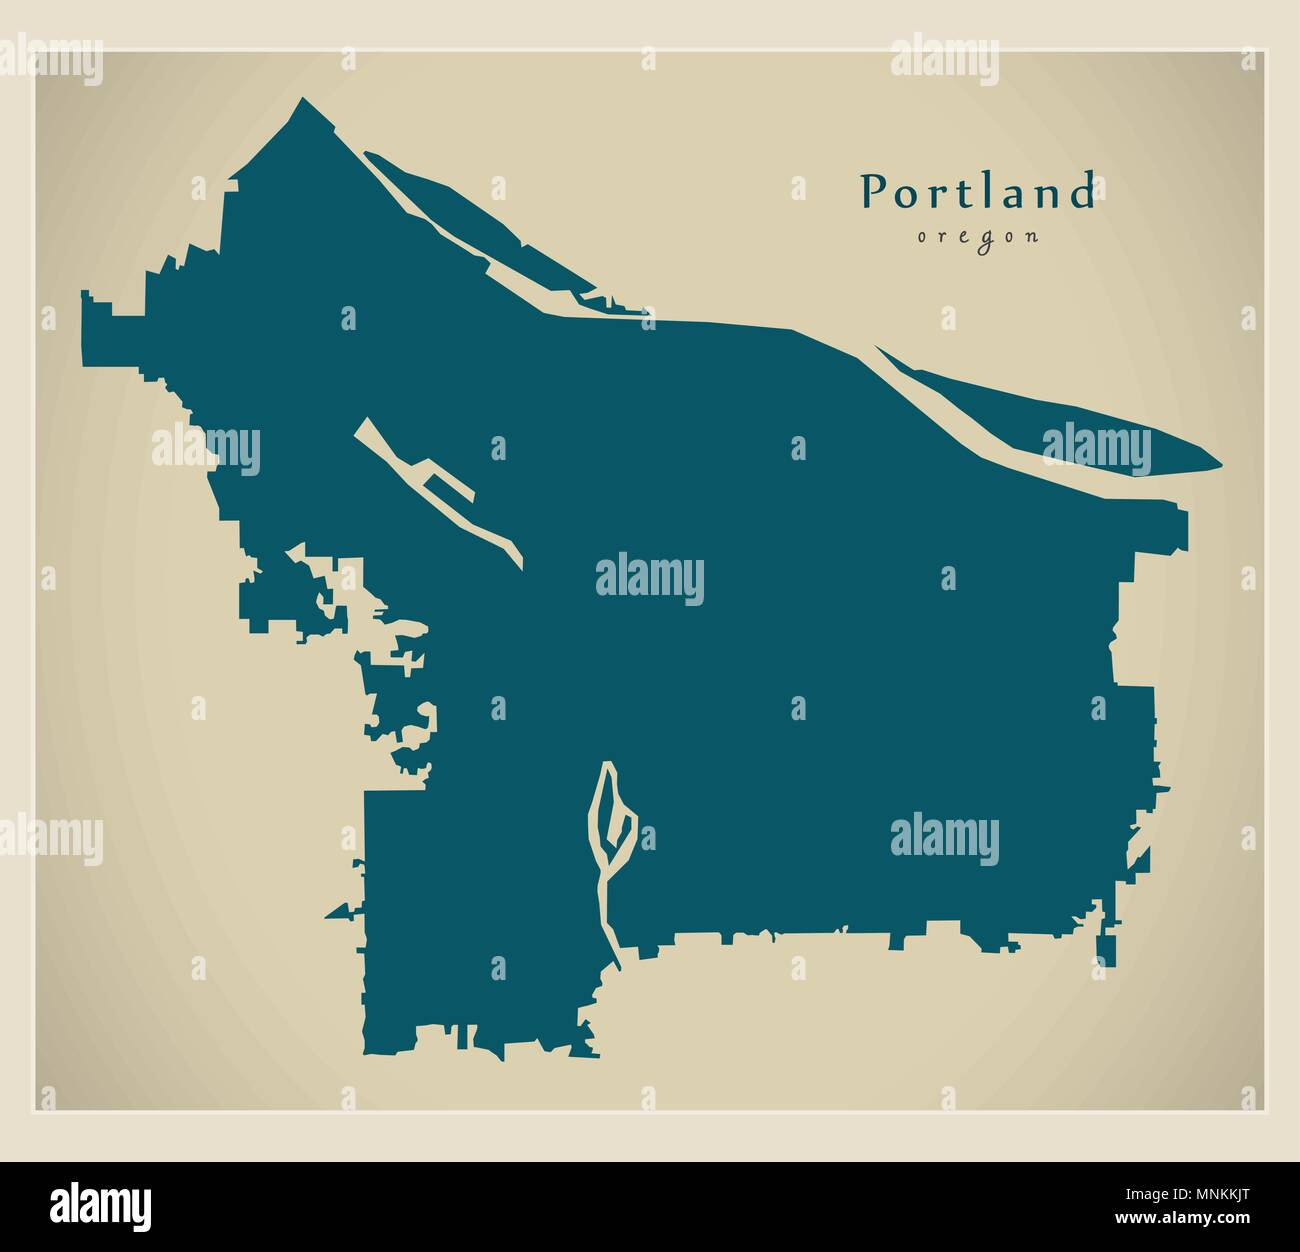 Modern City Map - Portland Oregon city of the USA Stock Vector Art ...